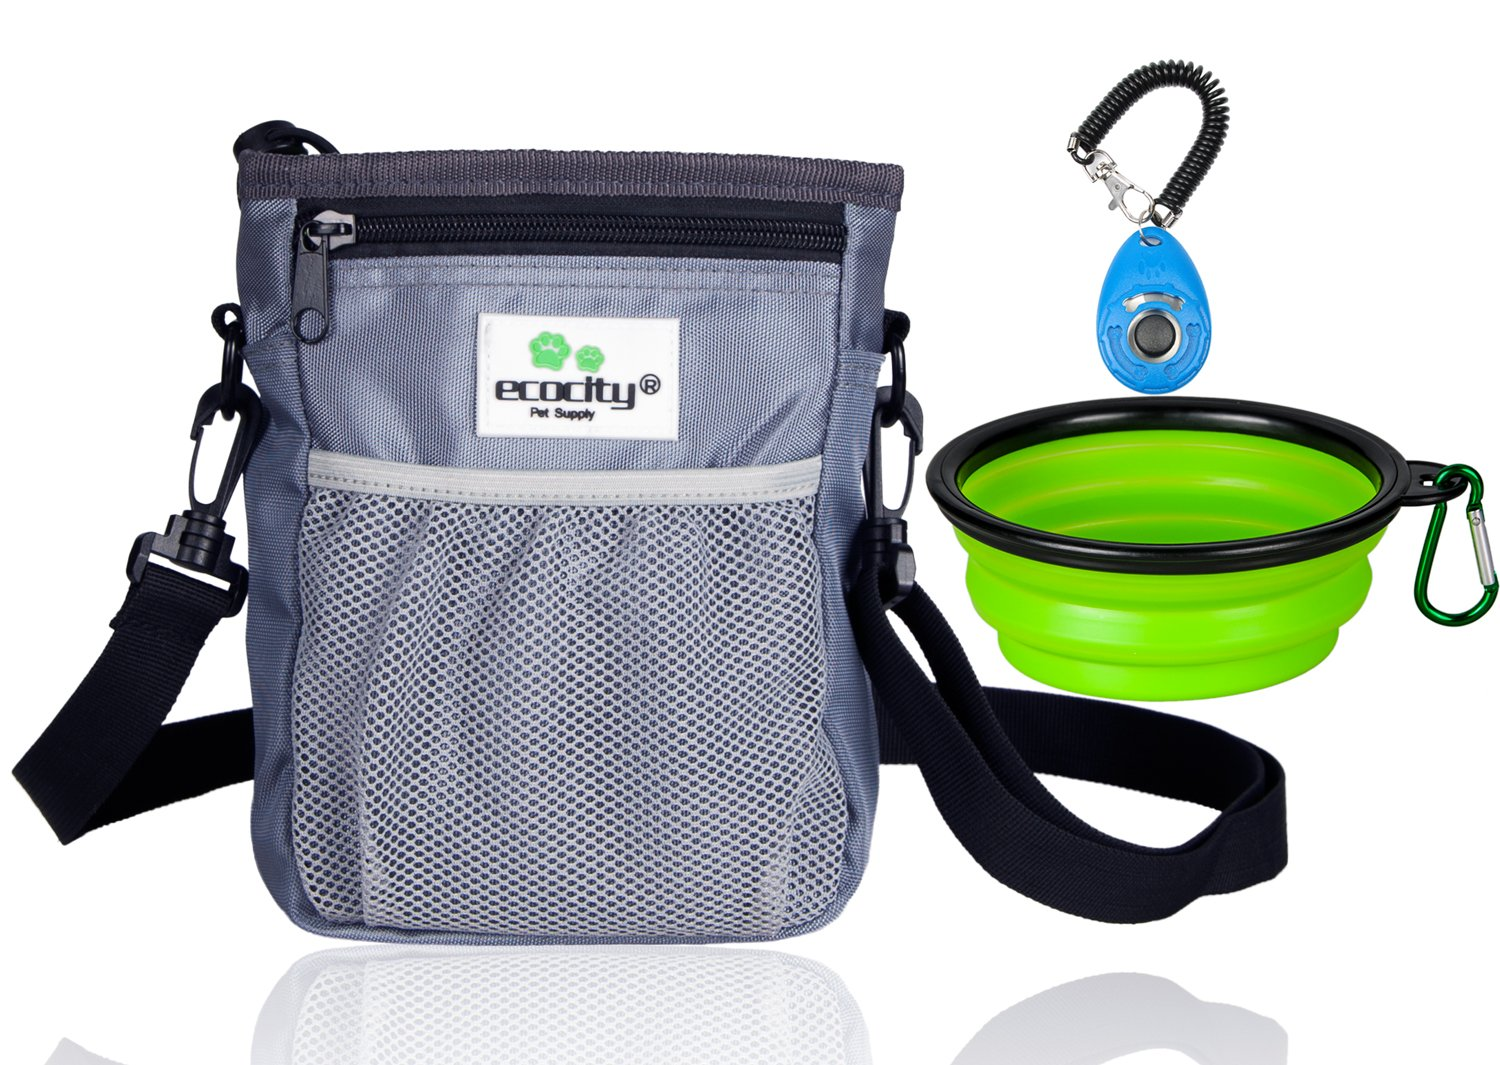 EcoCity 2018 NEW UPGRADE version Dog Treat Pouch Training - Built-in Poop Bag Dispenser, Perfect Carries Pet Toys, Treats - 3 Ways To Wear